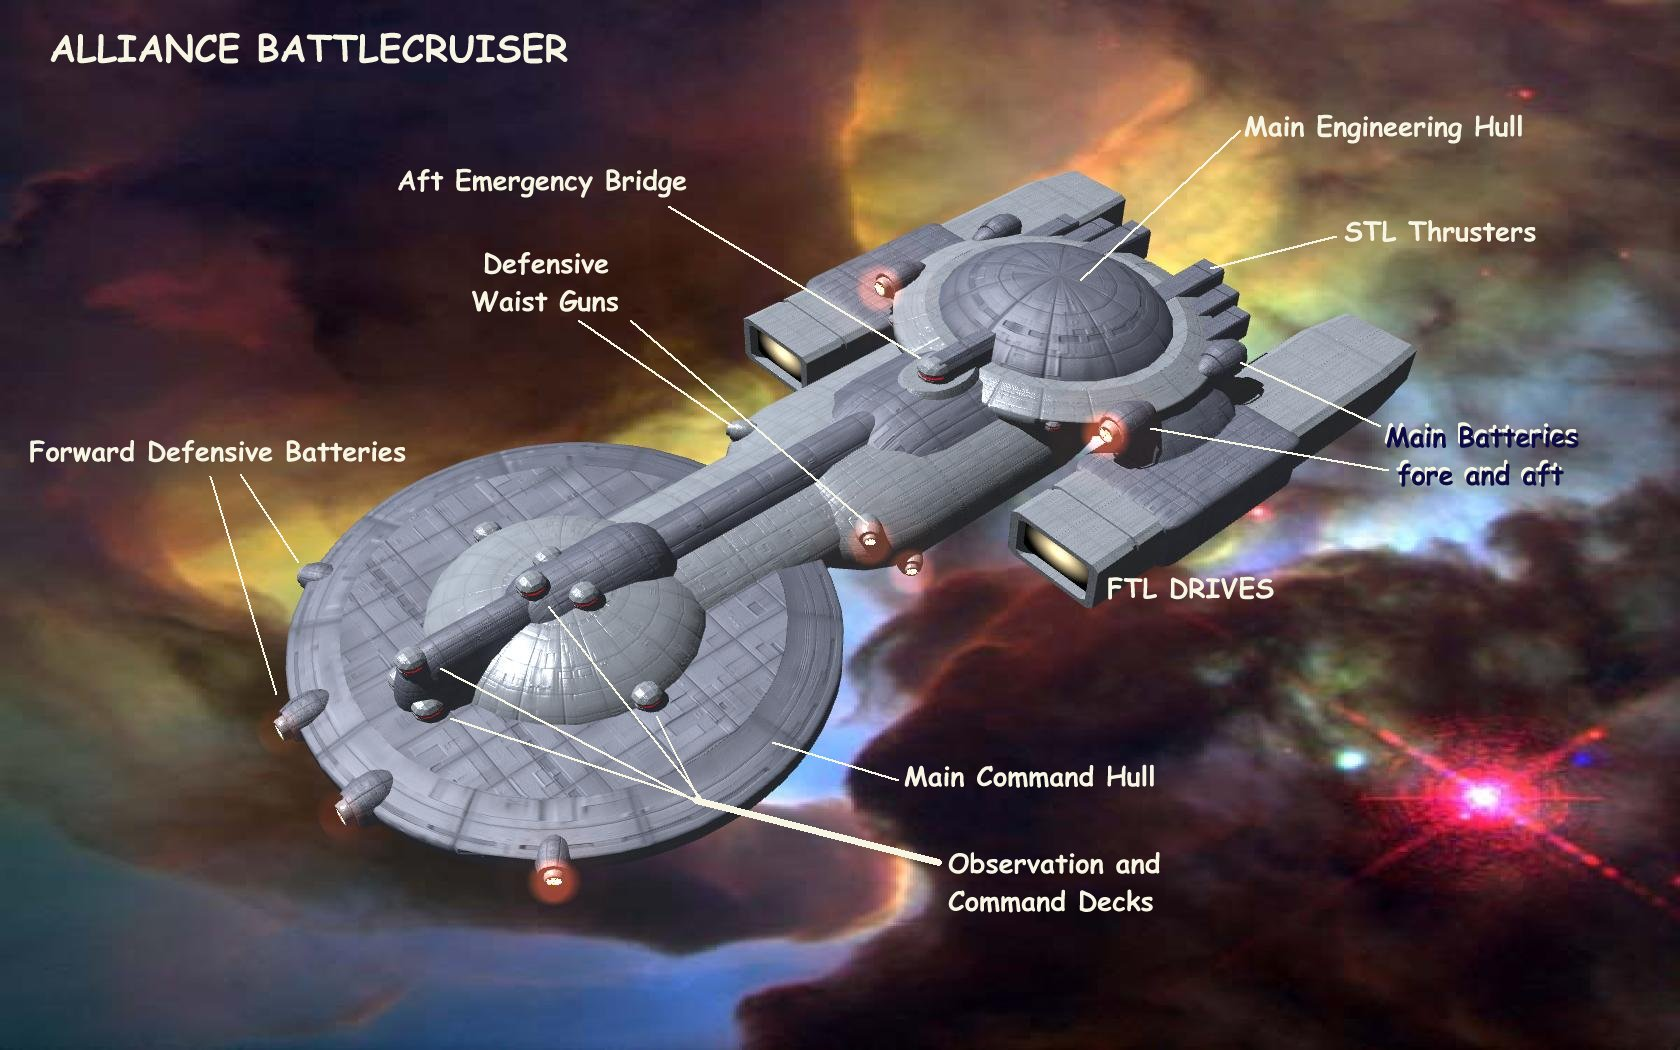 AllianceBattlecruiser01-w_legend.jpg